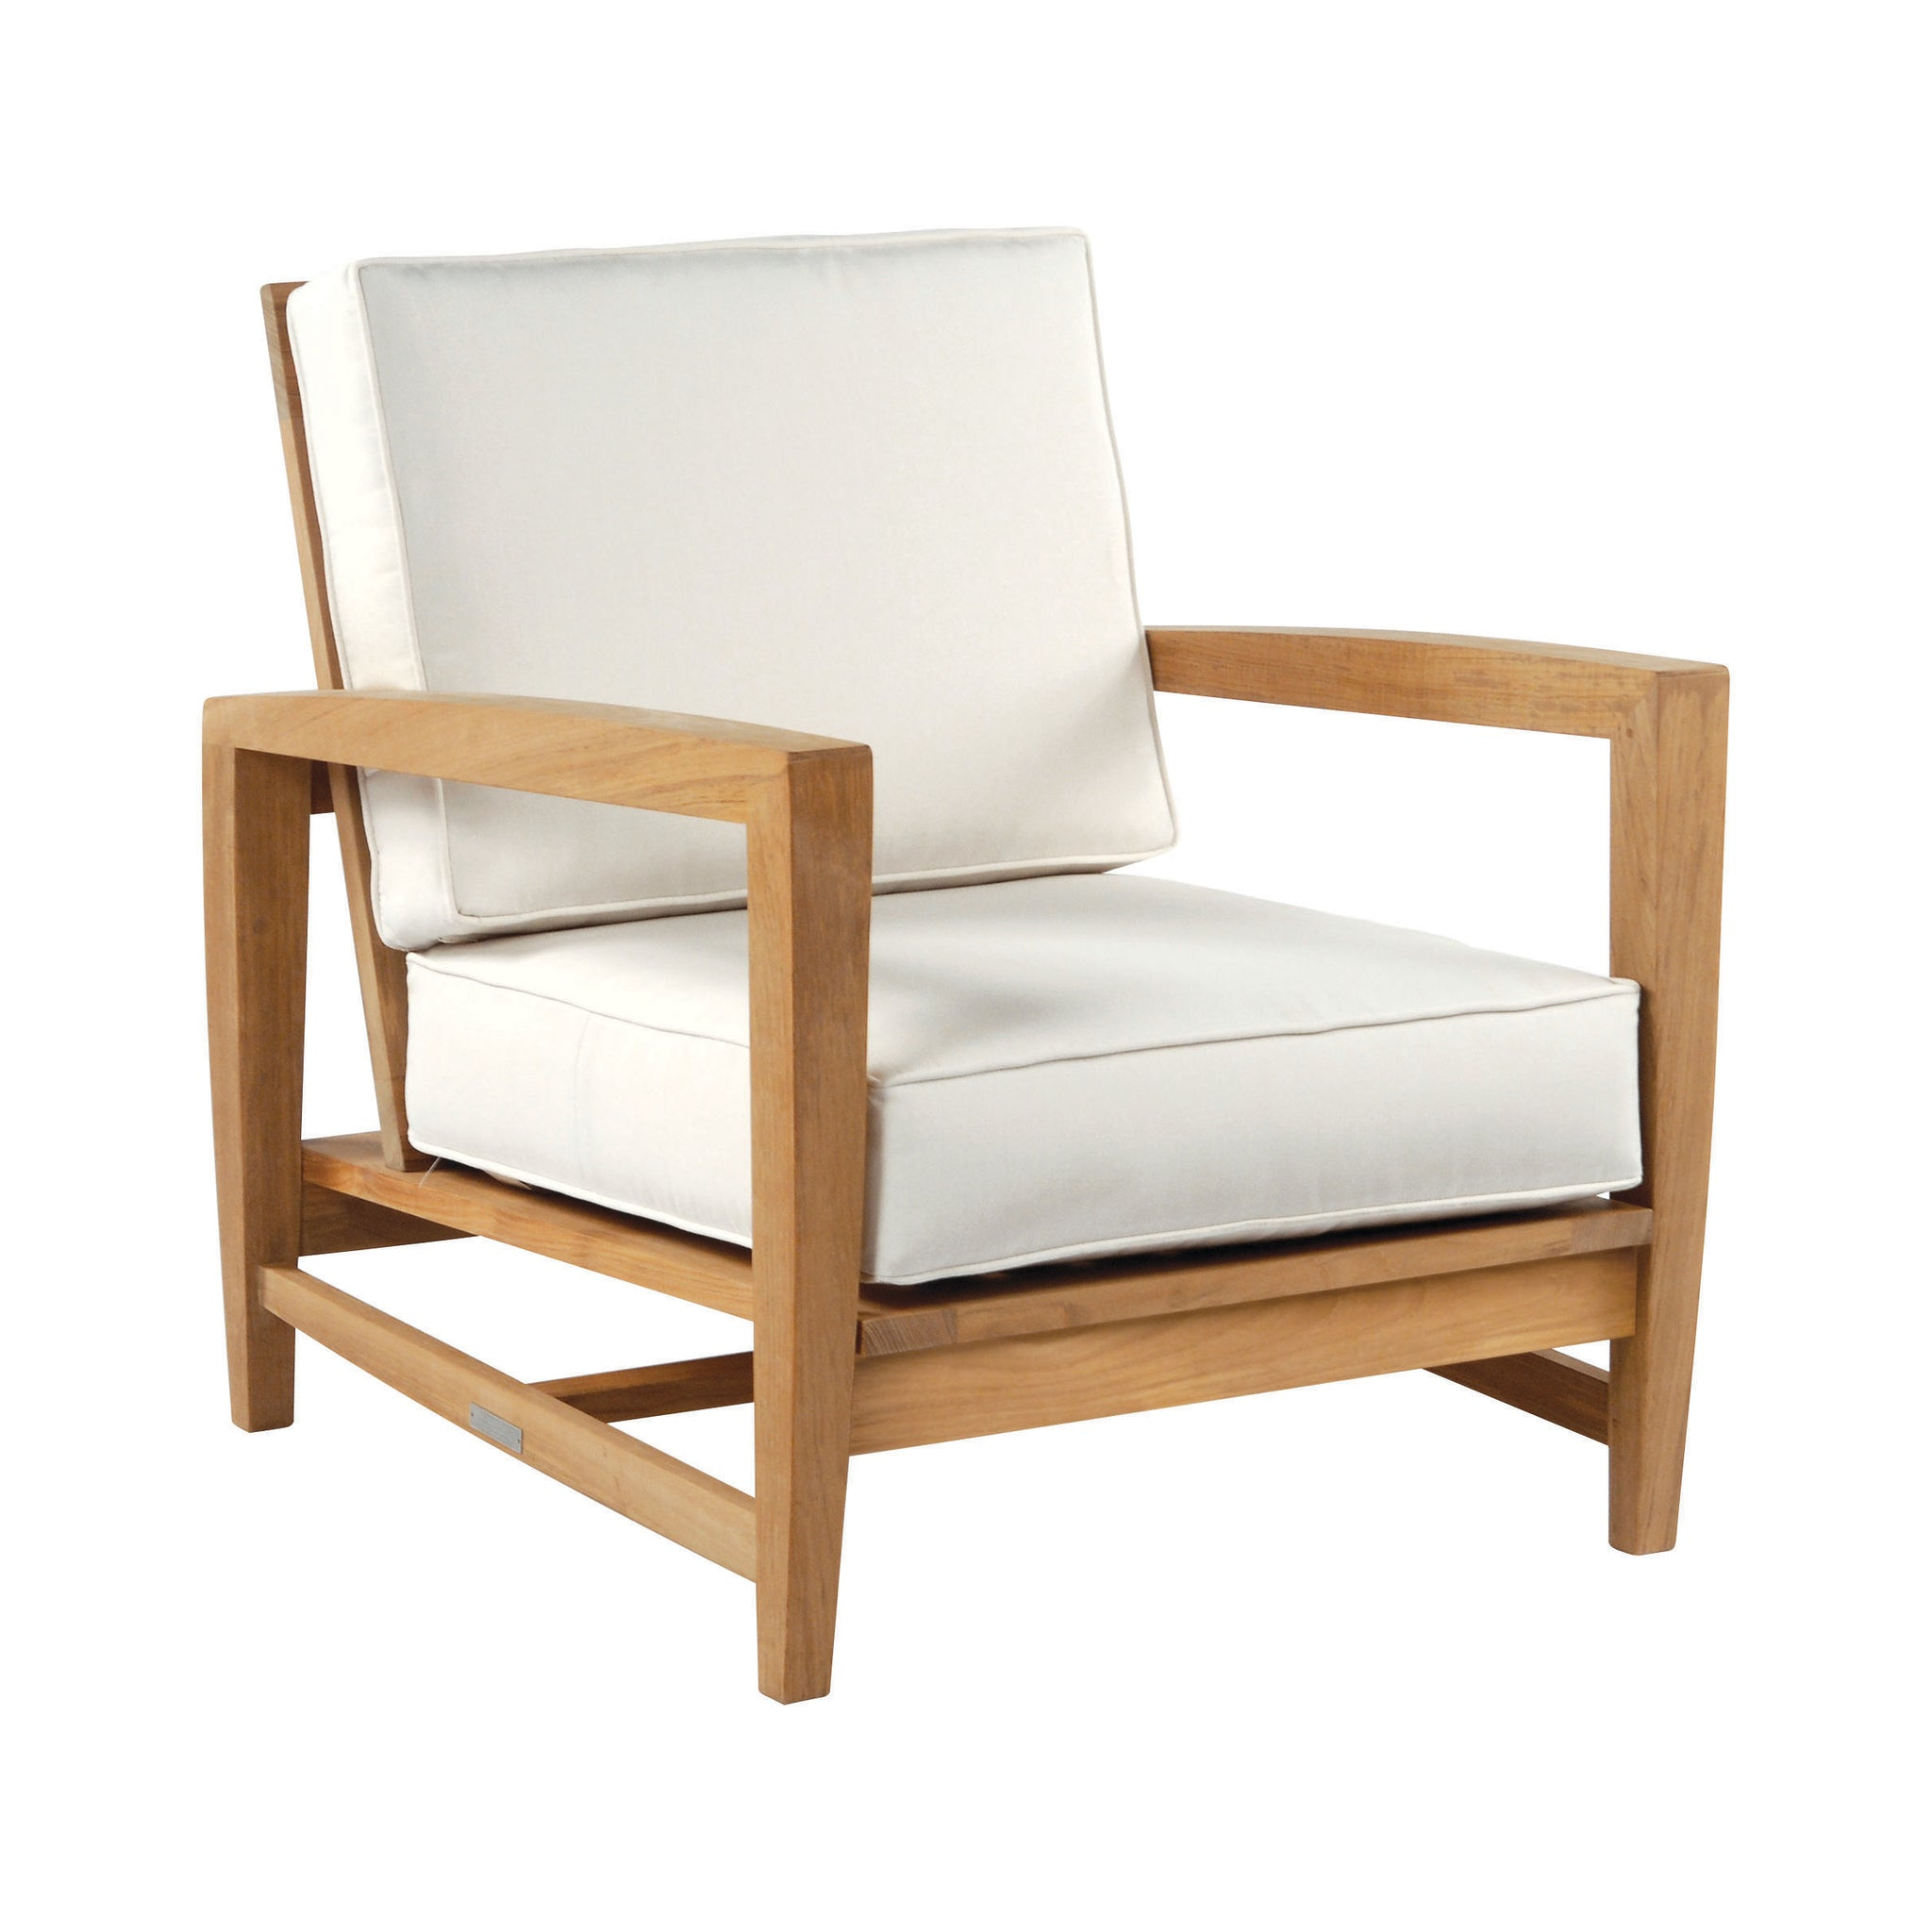 Fabulous Amalfi Deep Seating Lounge Chair Kingsley Bate Outdoor Pdpeps Interior Chair Design Pdpepsorg